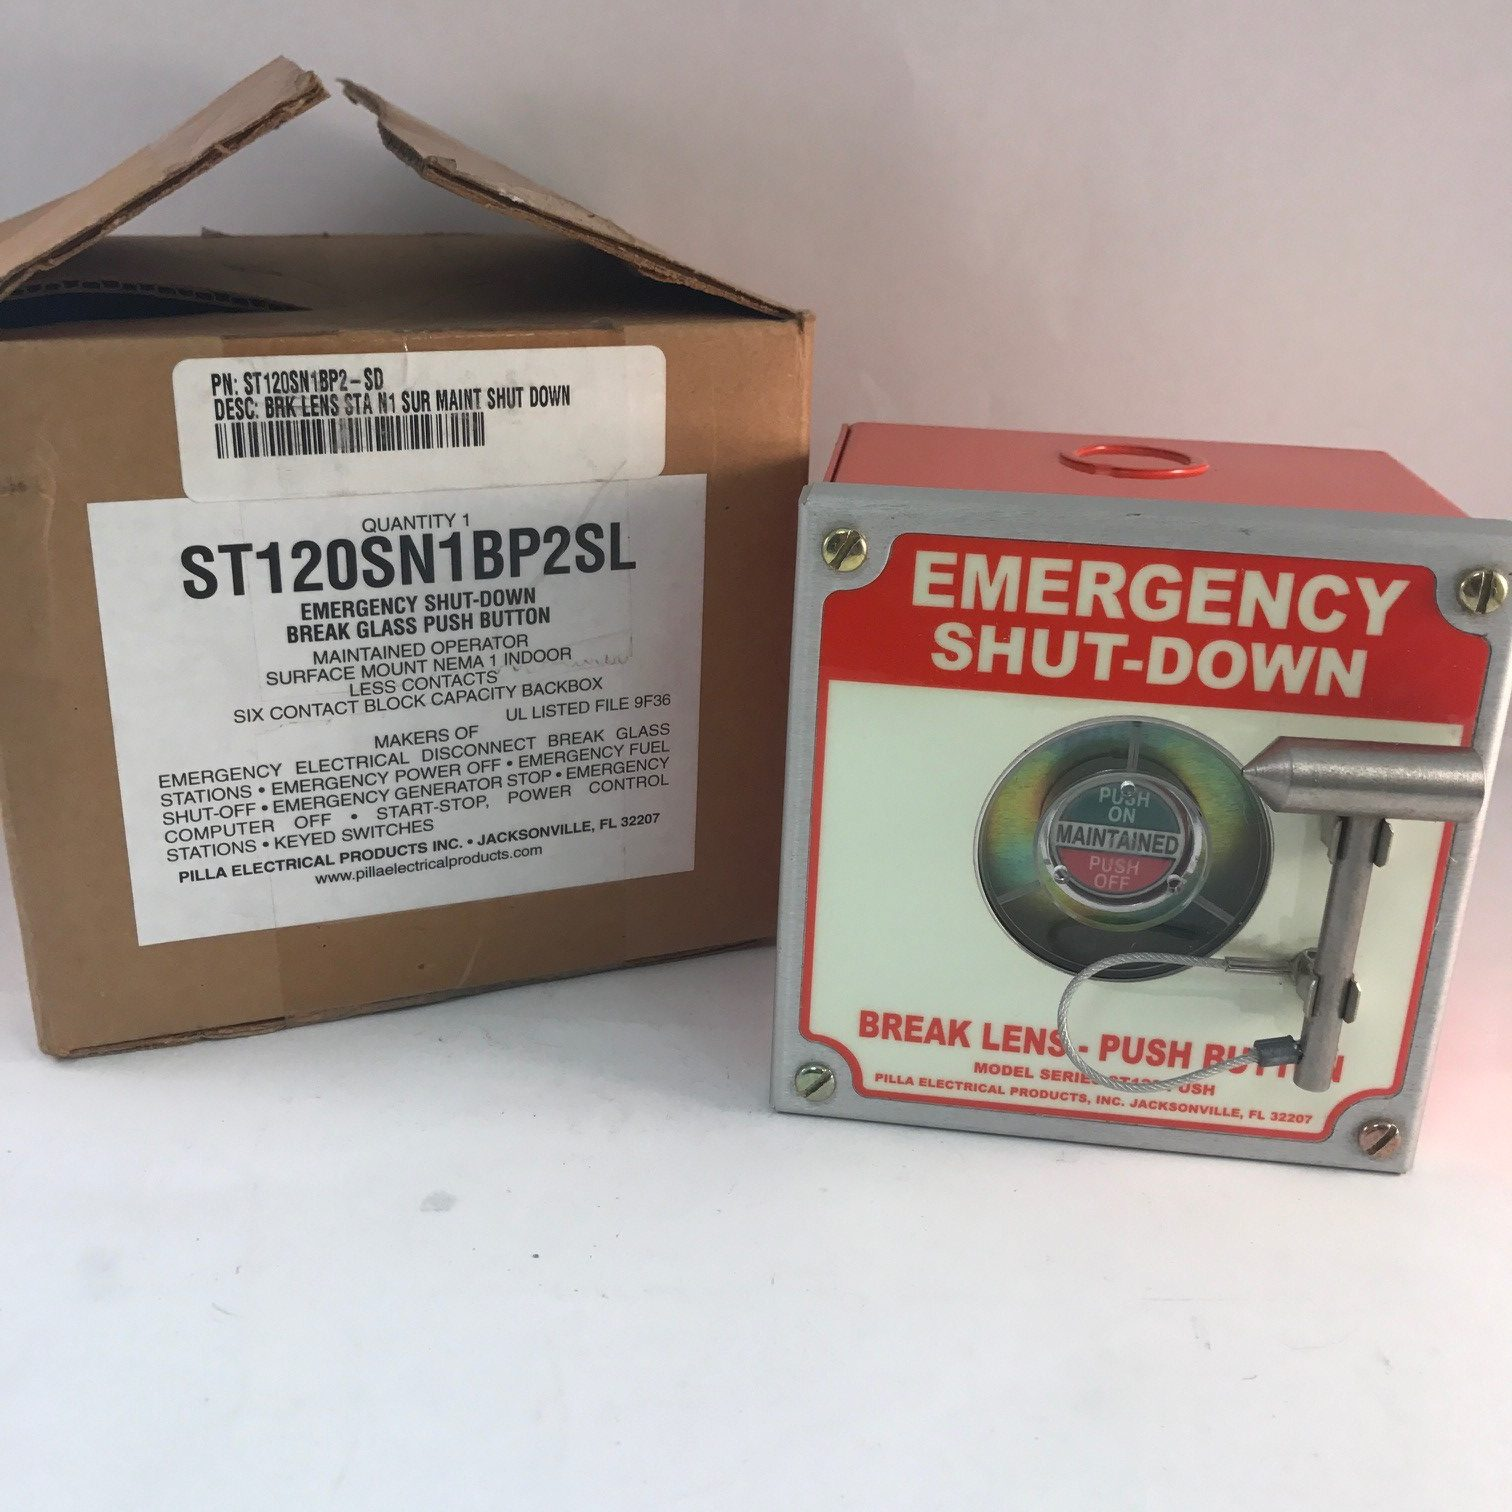 Pilla Electrical ST120SN1BP2SL Emergency Shut-Down Break Glass Push Button